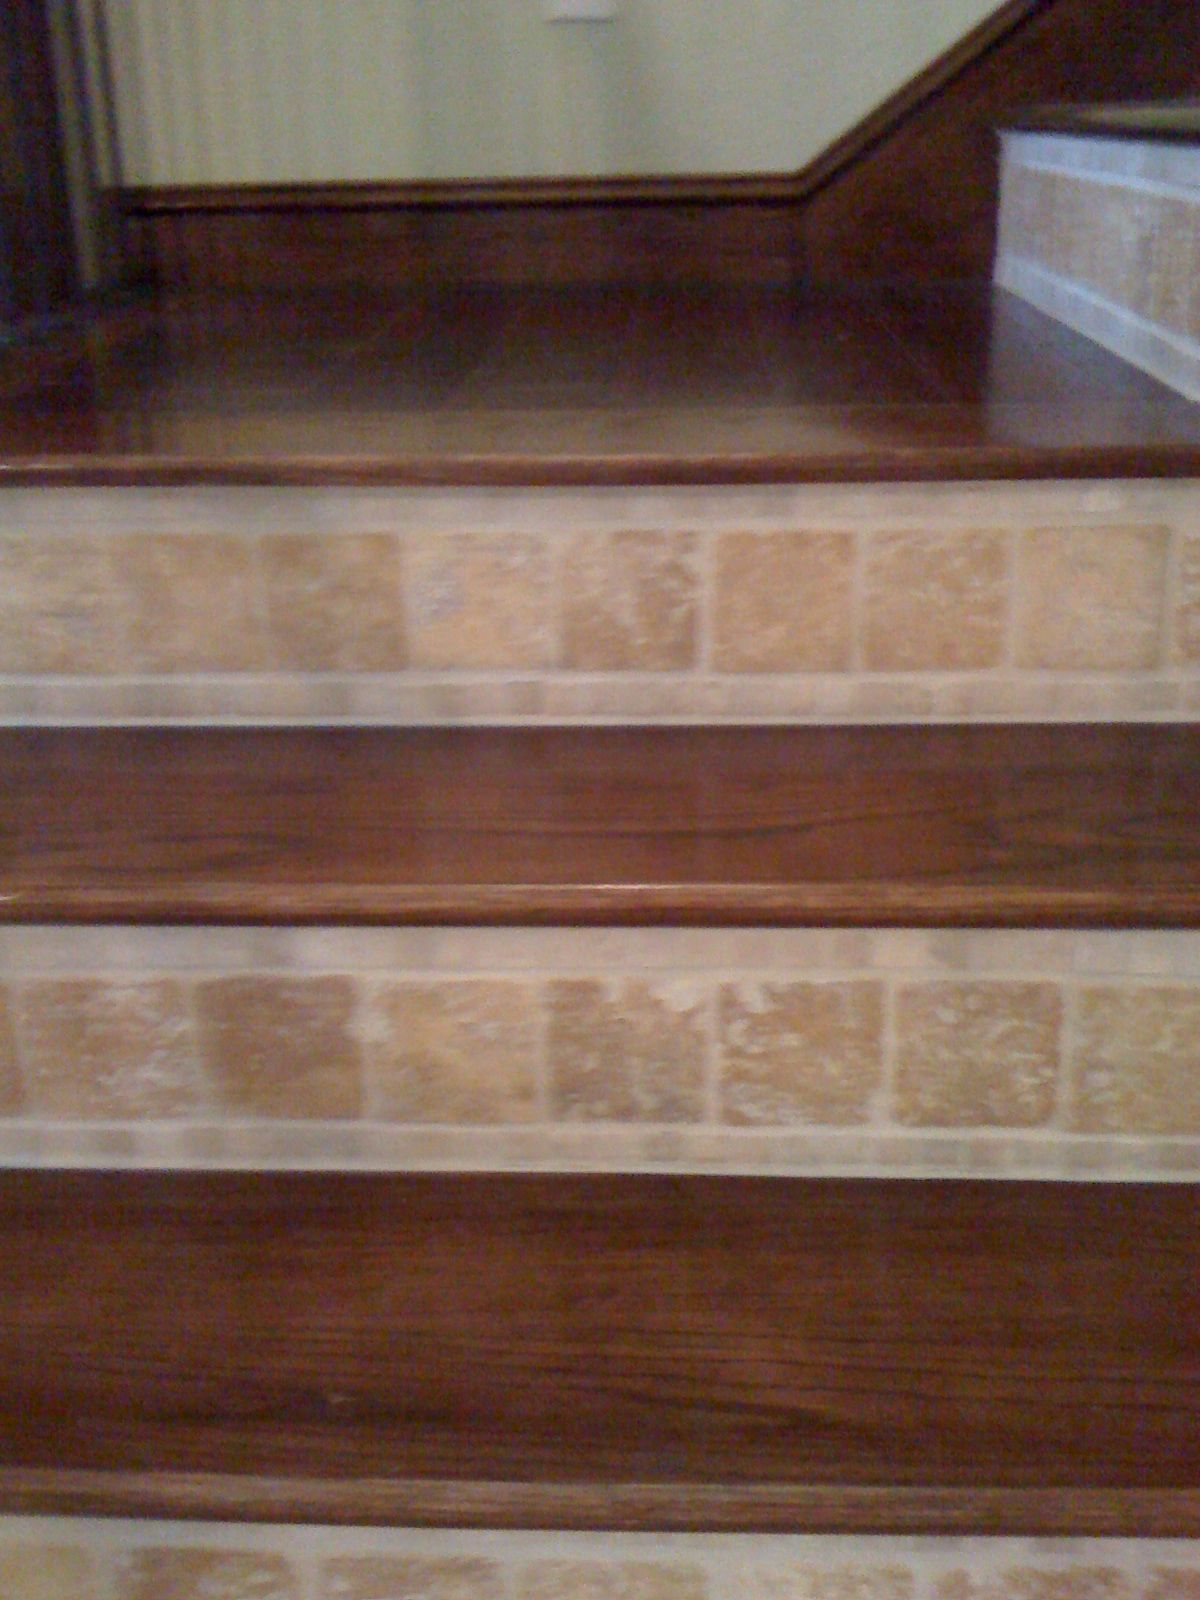 Best Tiled Wood Stairs We Have The Wood Stairs Now Need To 640 x 480